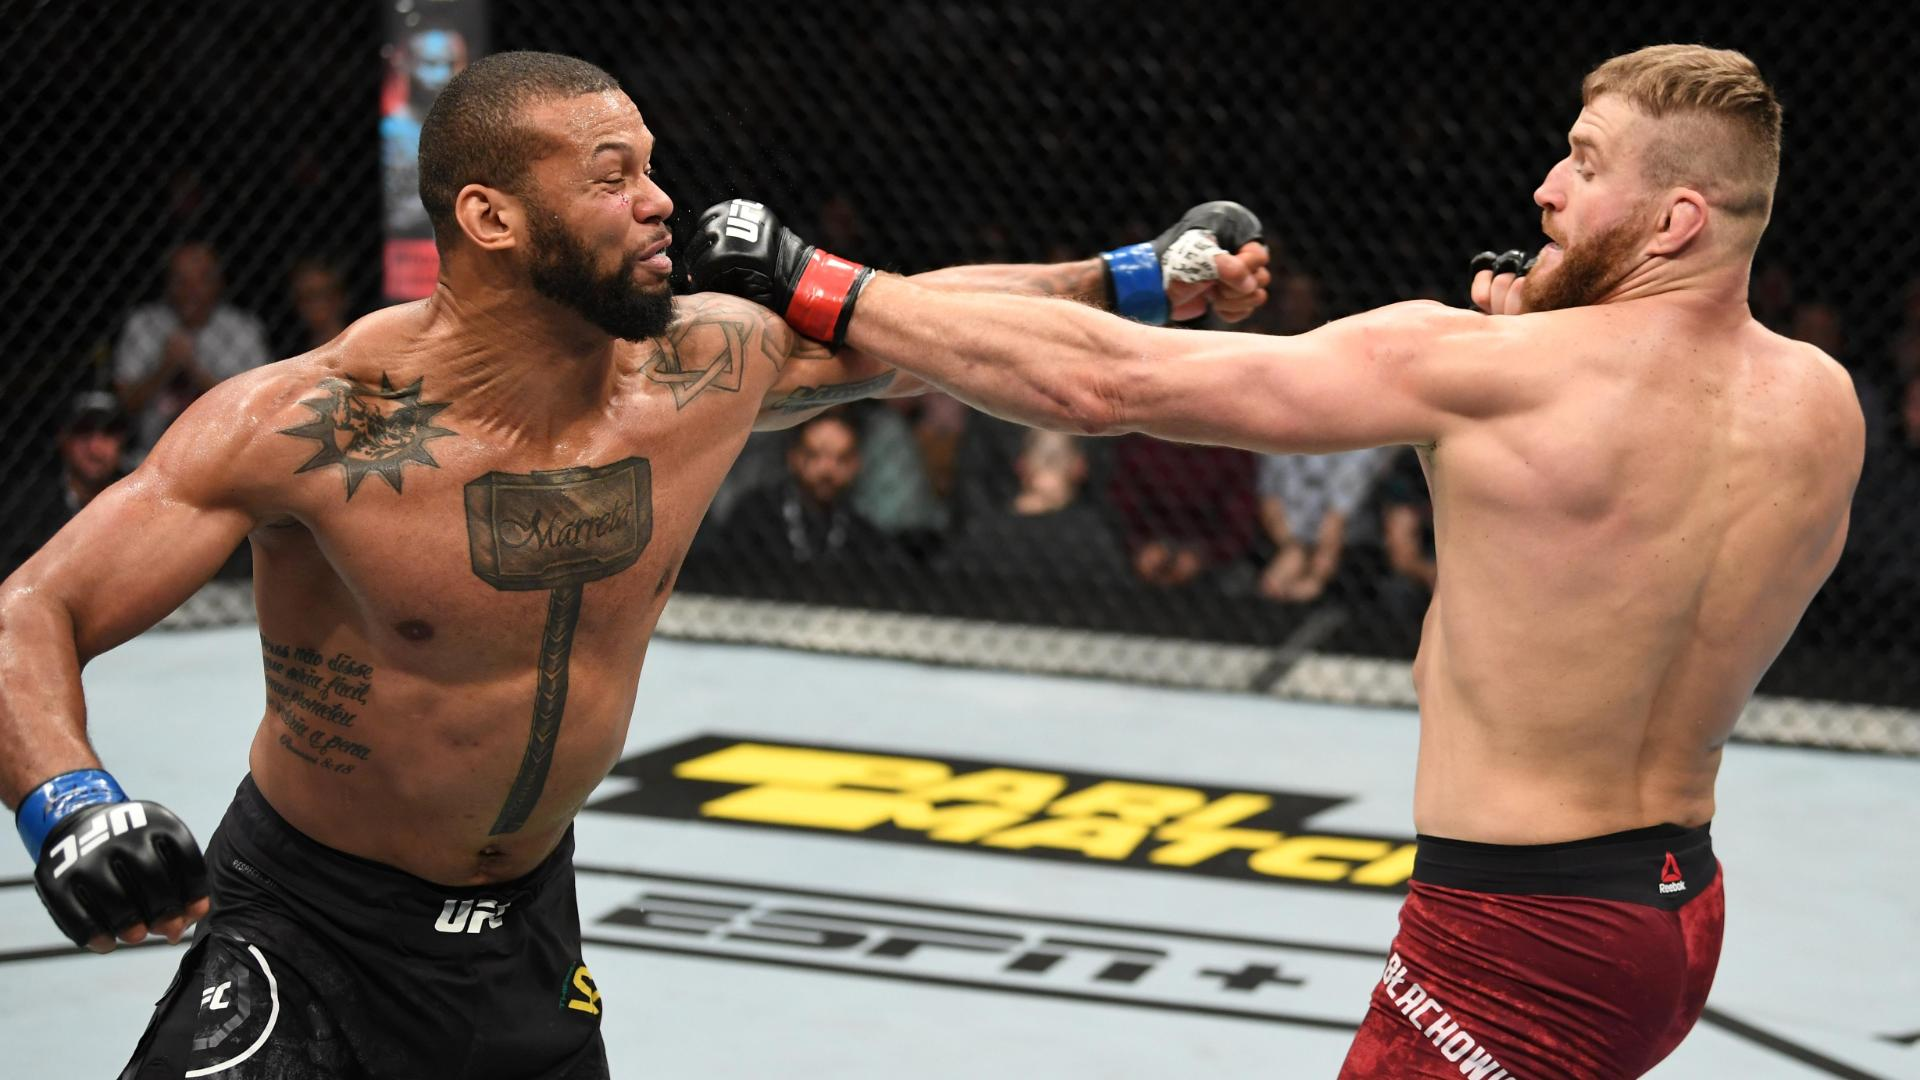 Santos drops Blachowicz with left hook for TKO victory